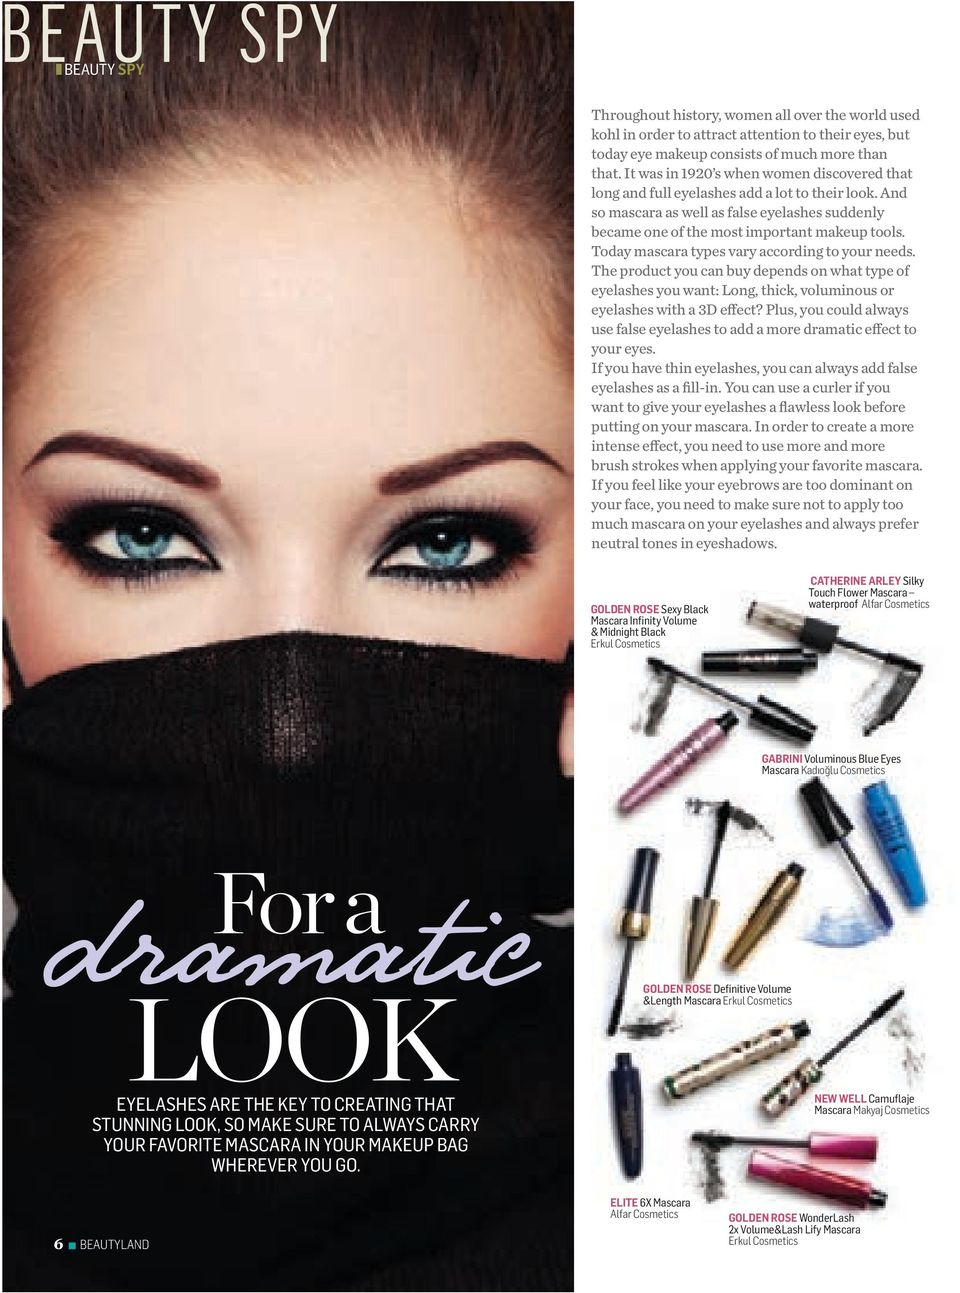 Today mascara types vary according to your needs. The product you can buy depends on what type of eyelashes you want: Long, thick, voluminous or eyelashes with a 3D effect?